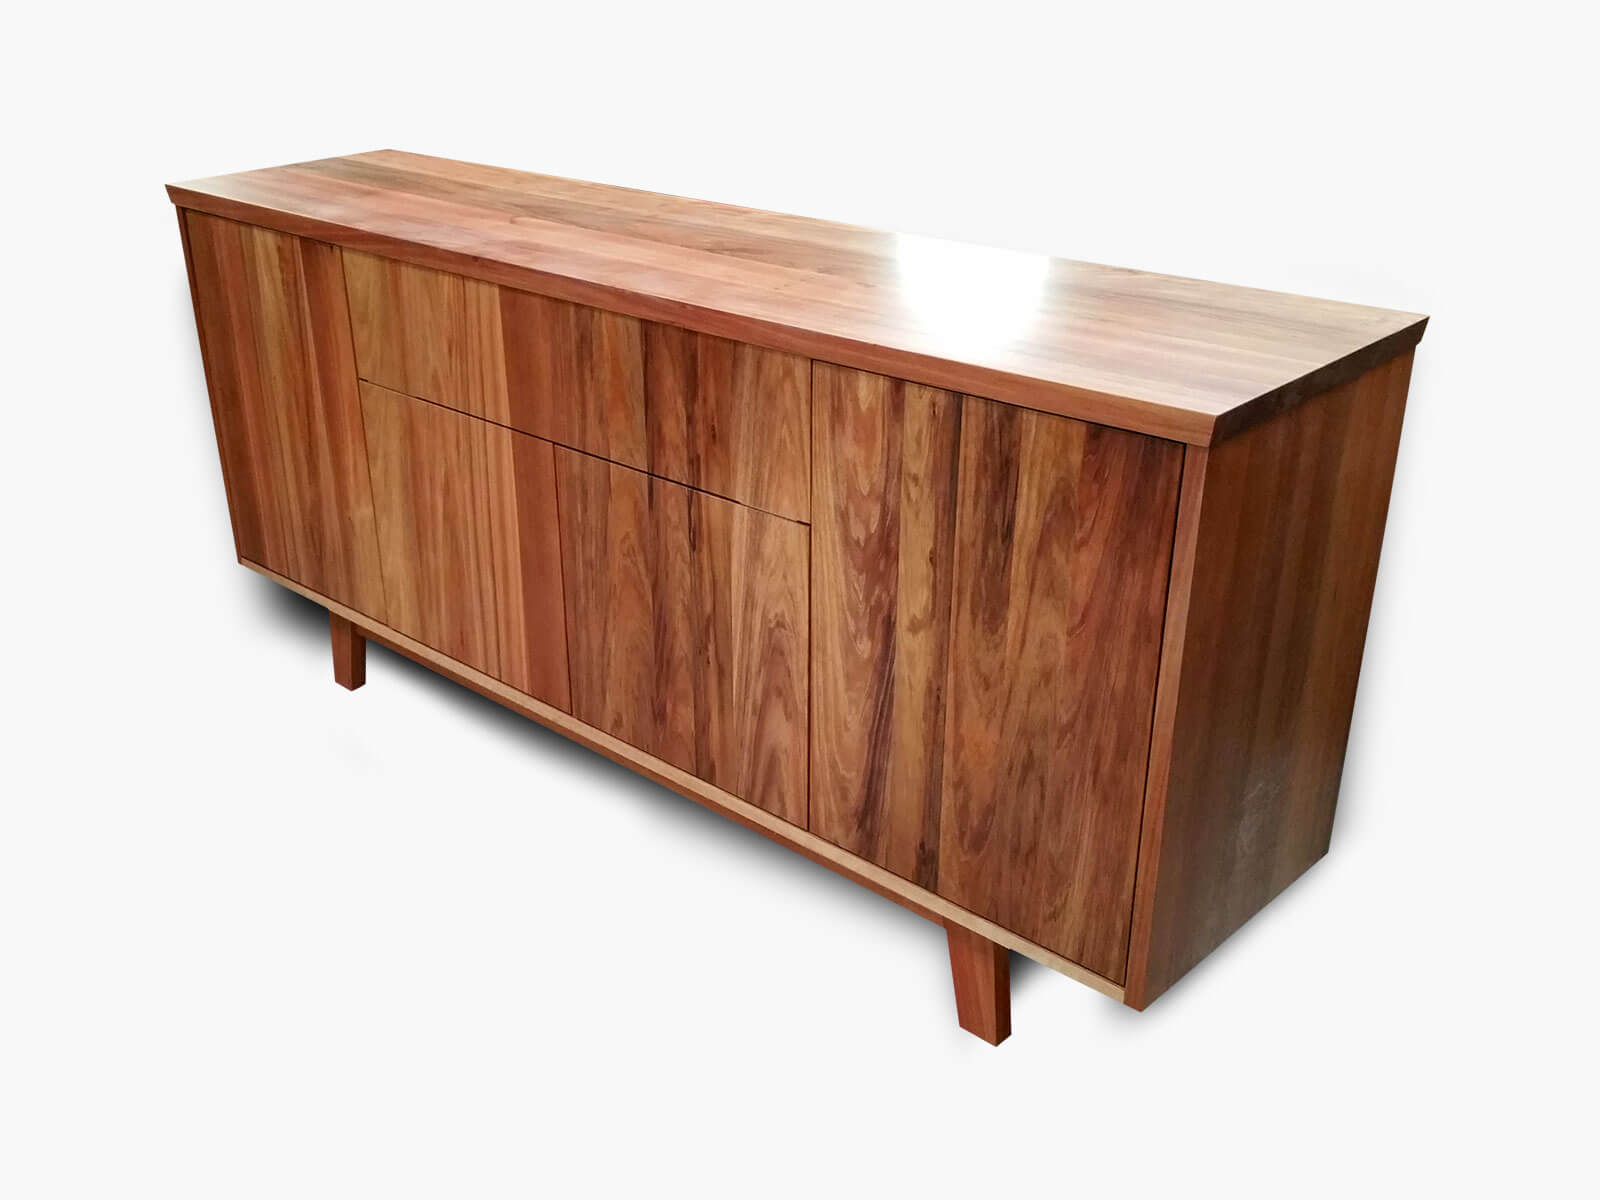 Retro-Buffet Timber Furniture